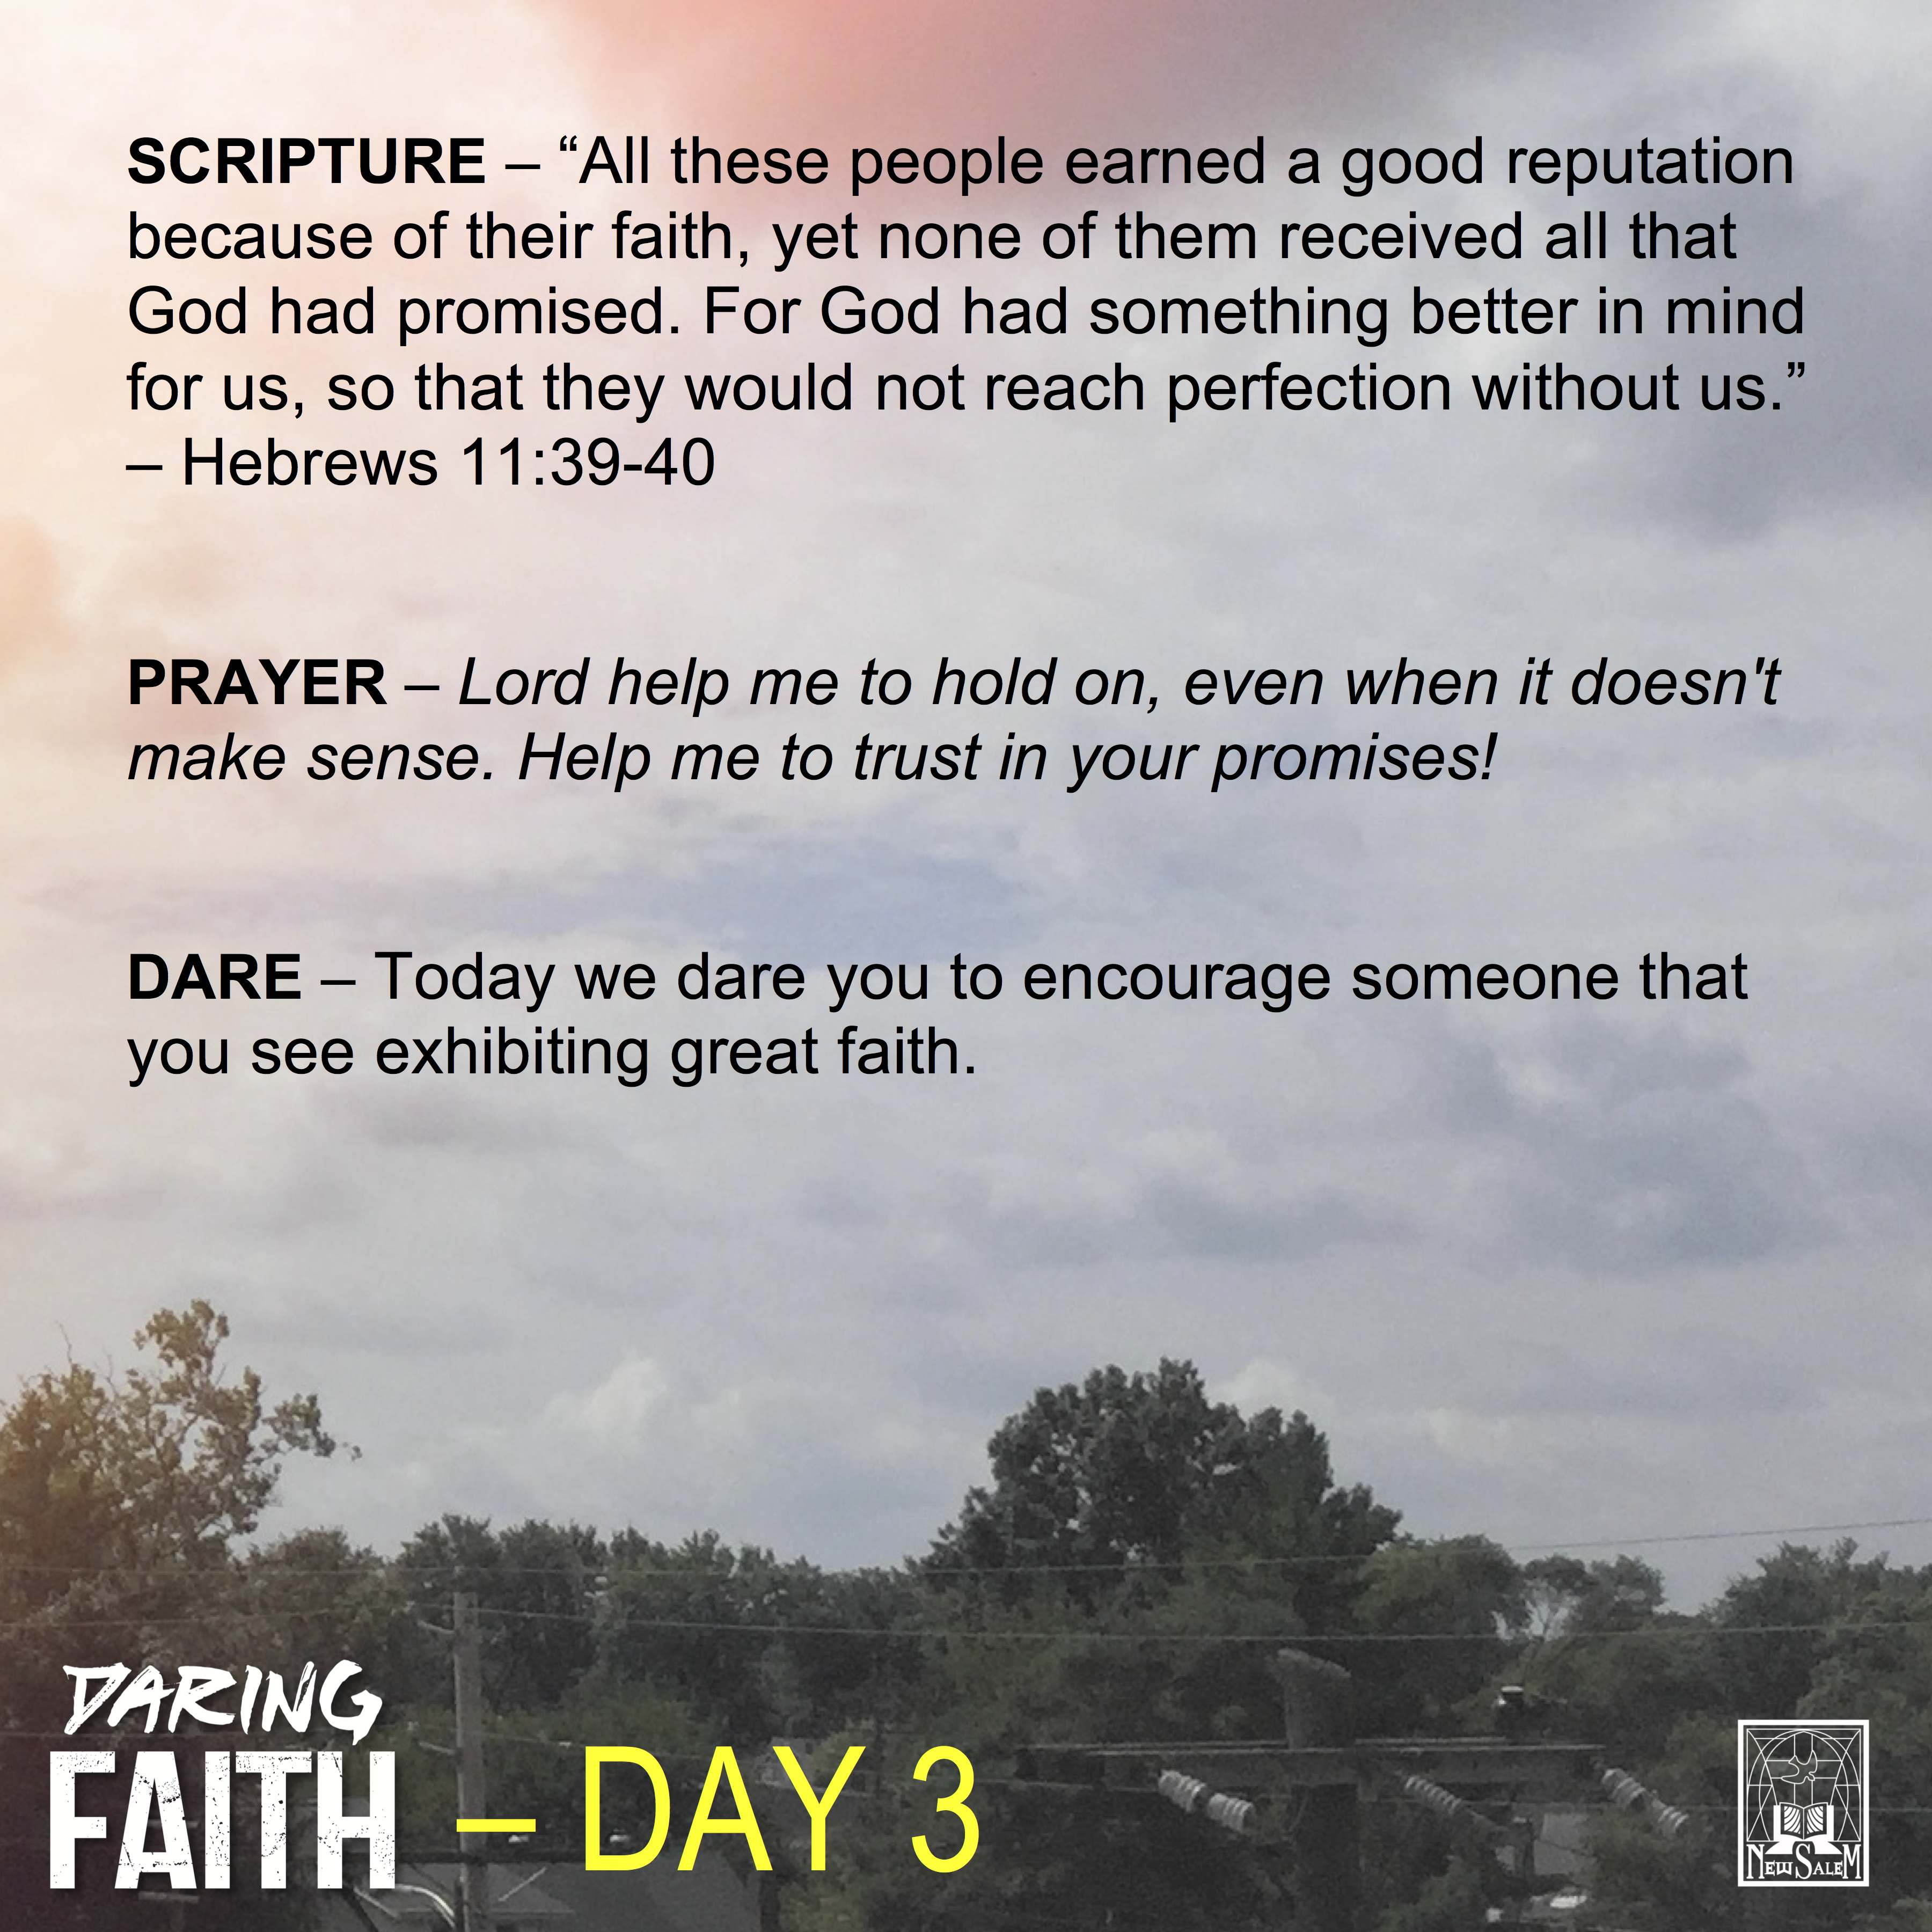 Daring Faith Devotional - Day 3